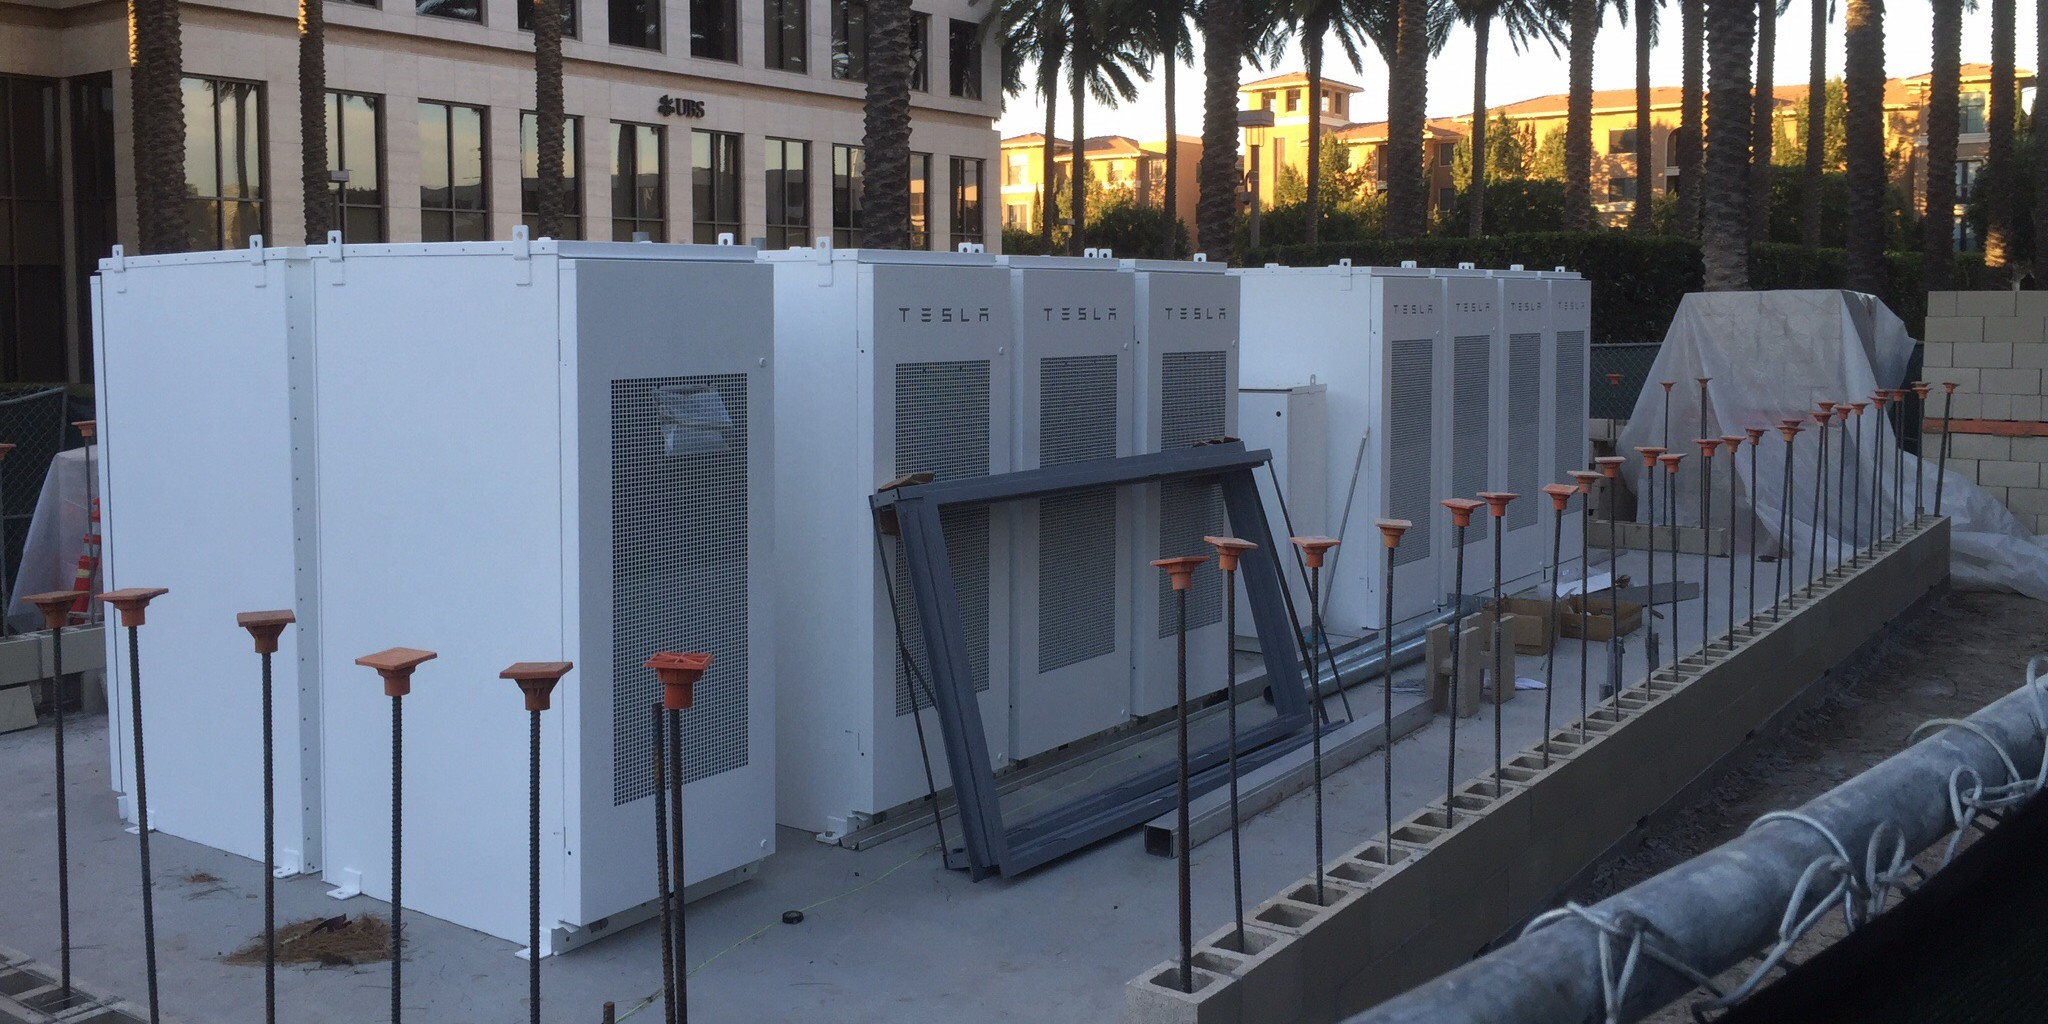 A New Tesla Powerpack And Solar Installation Shows The